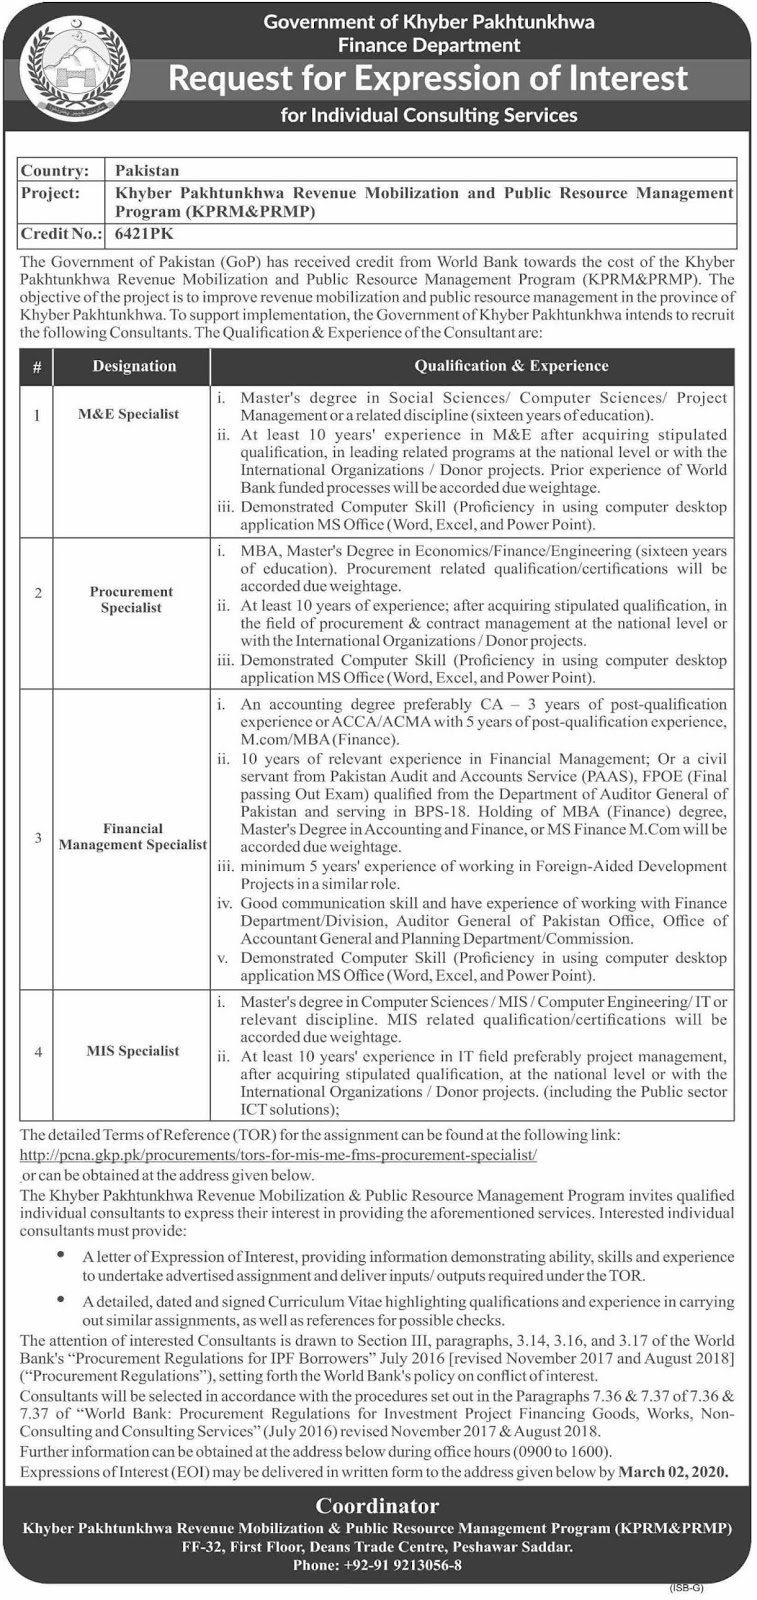 Govt jobs in Finance Department KPK For M&E Specialist, Procurement Specialist  February 2020